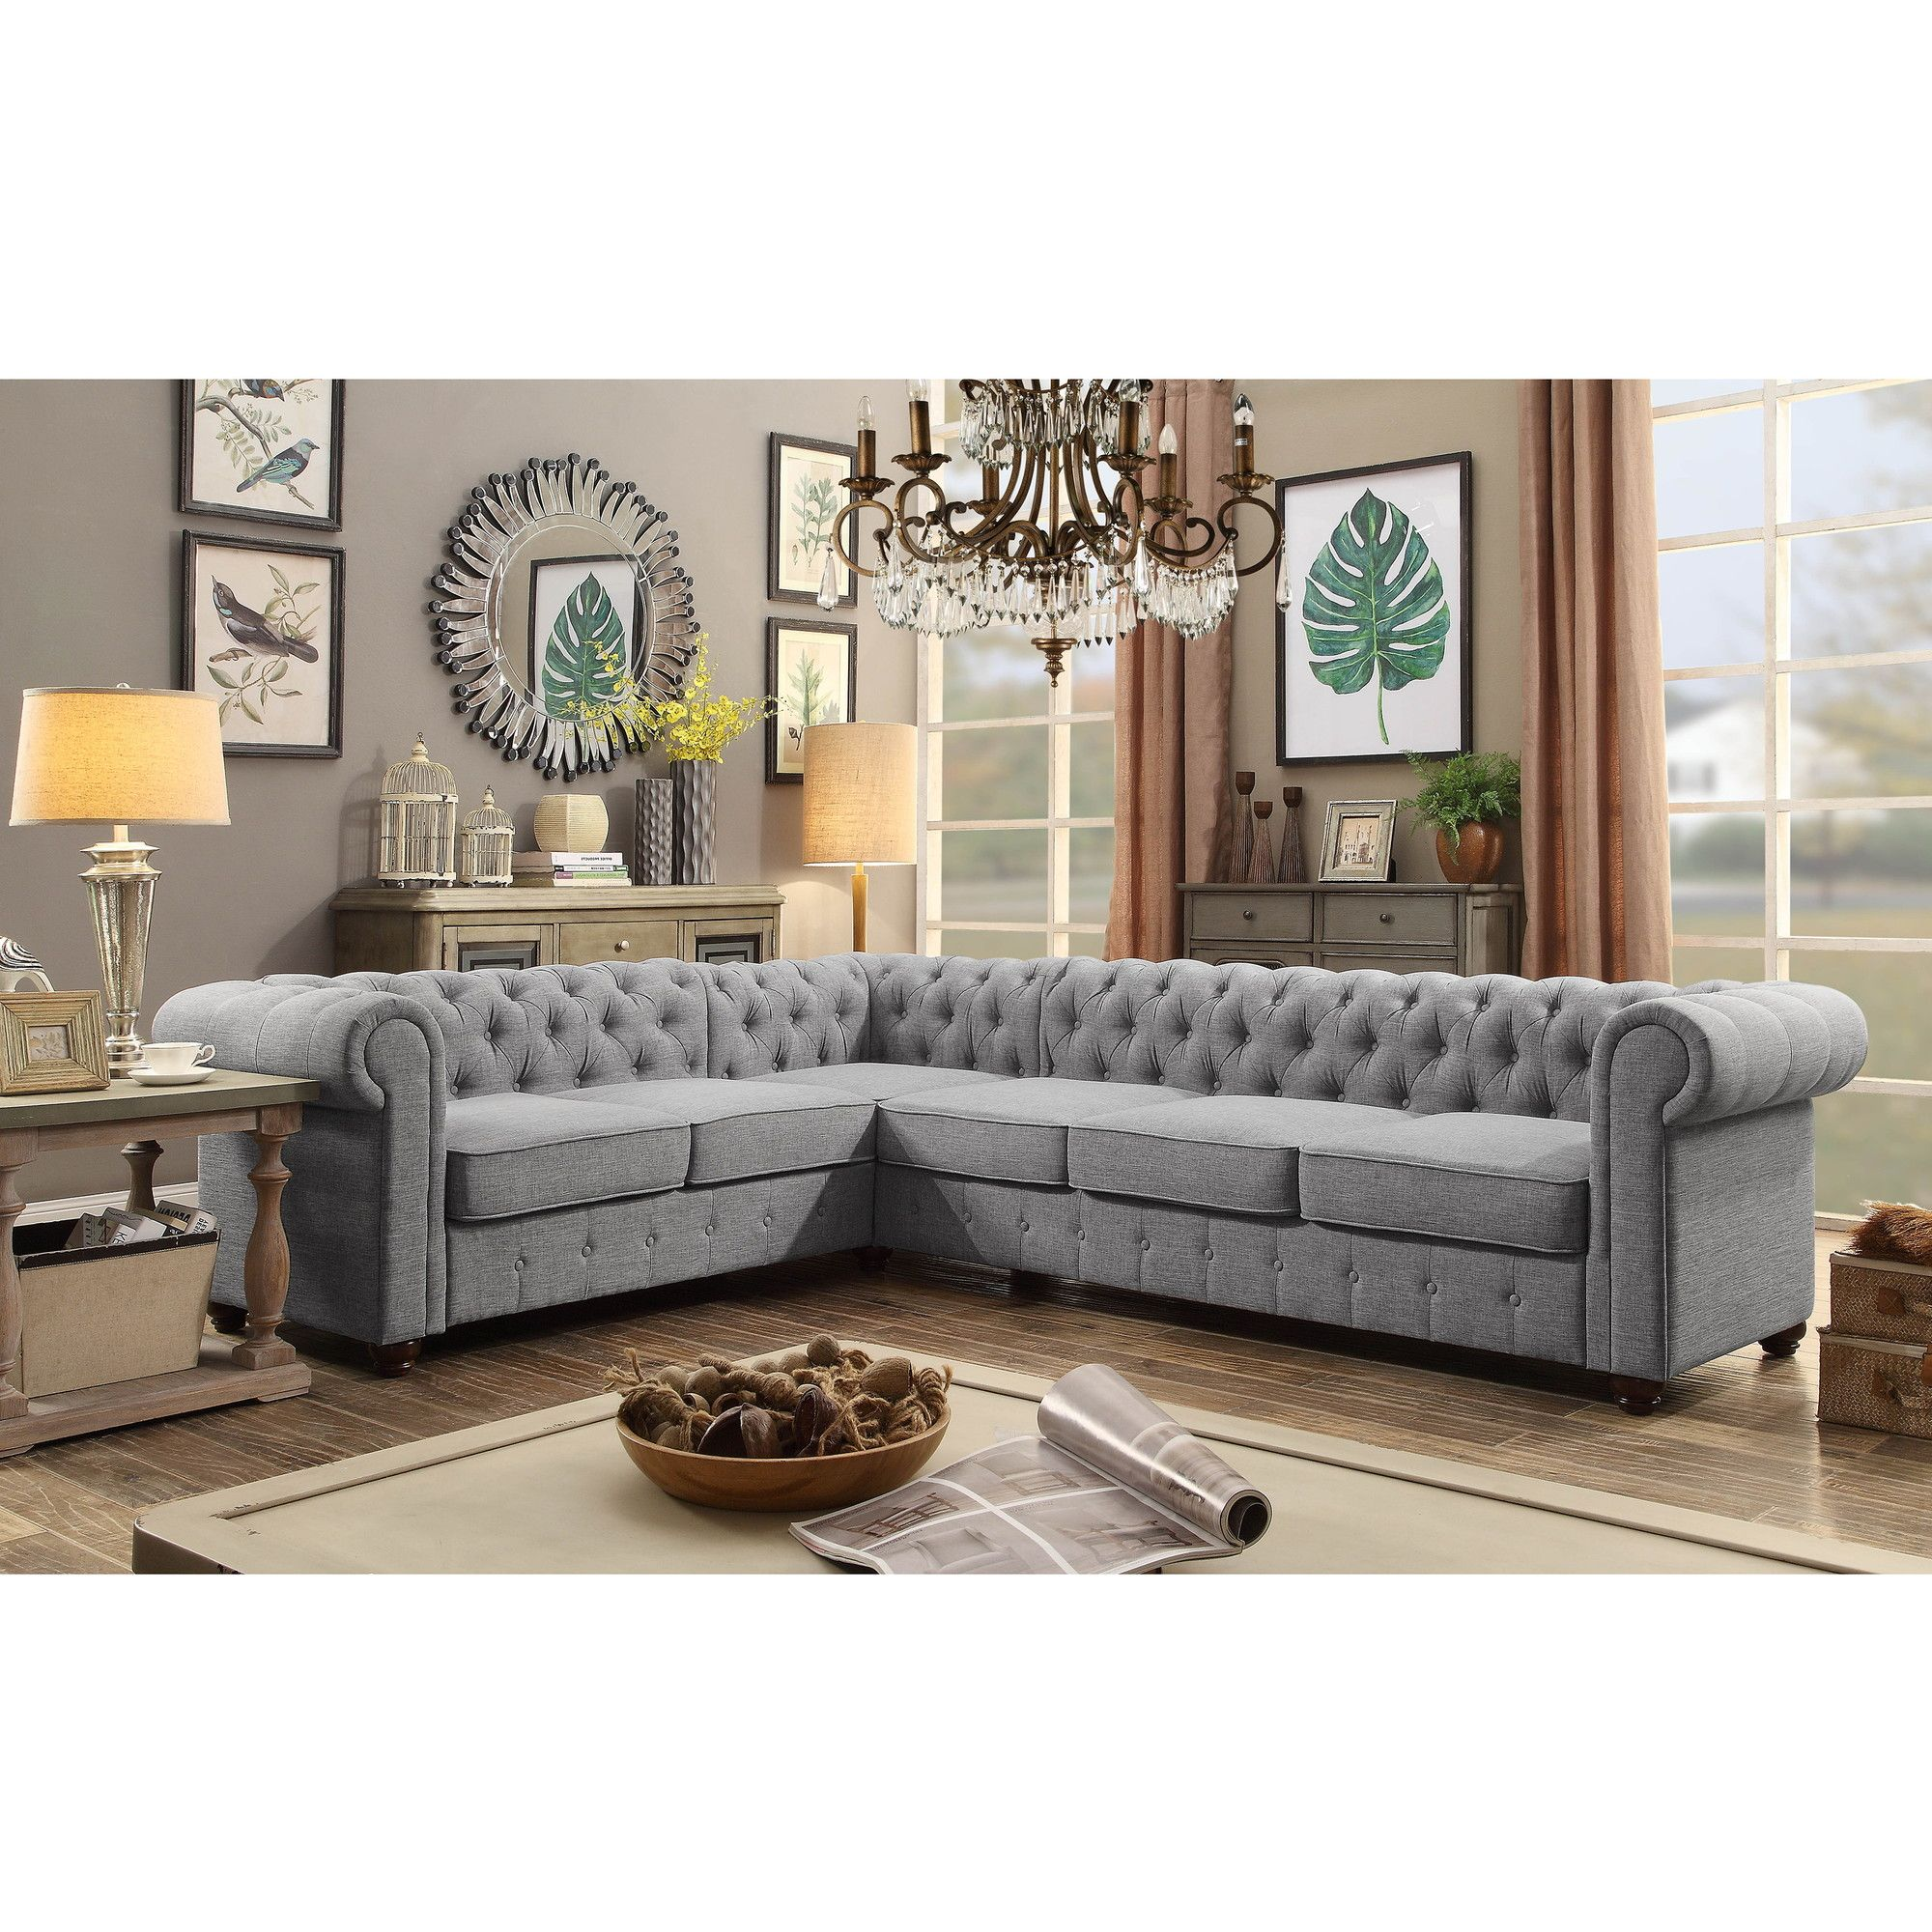 Shop Wayfair for Sectional Sofas to match every style and bud